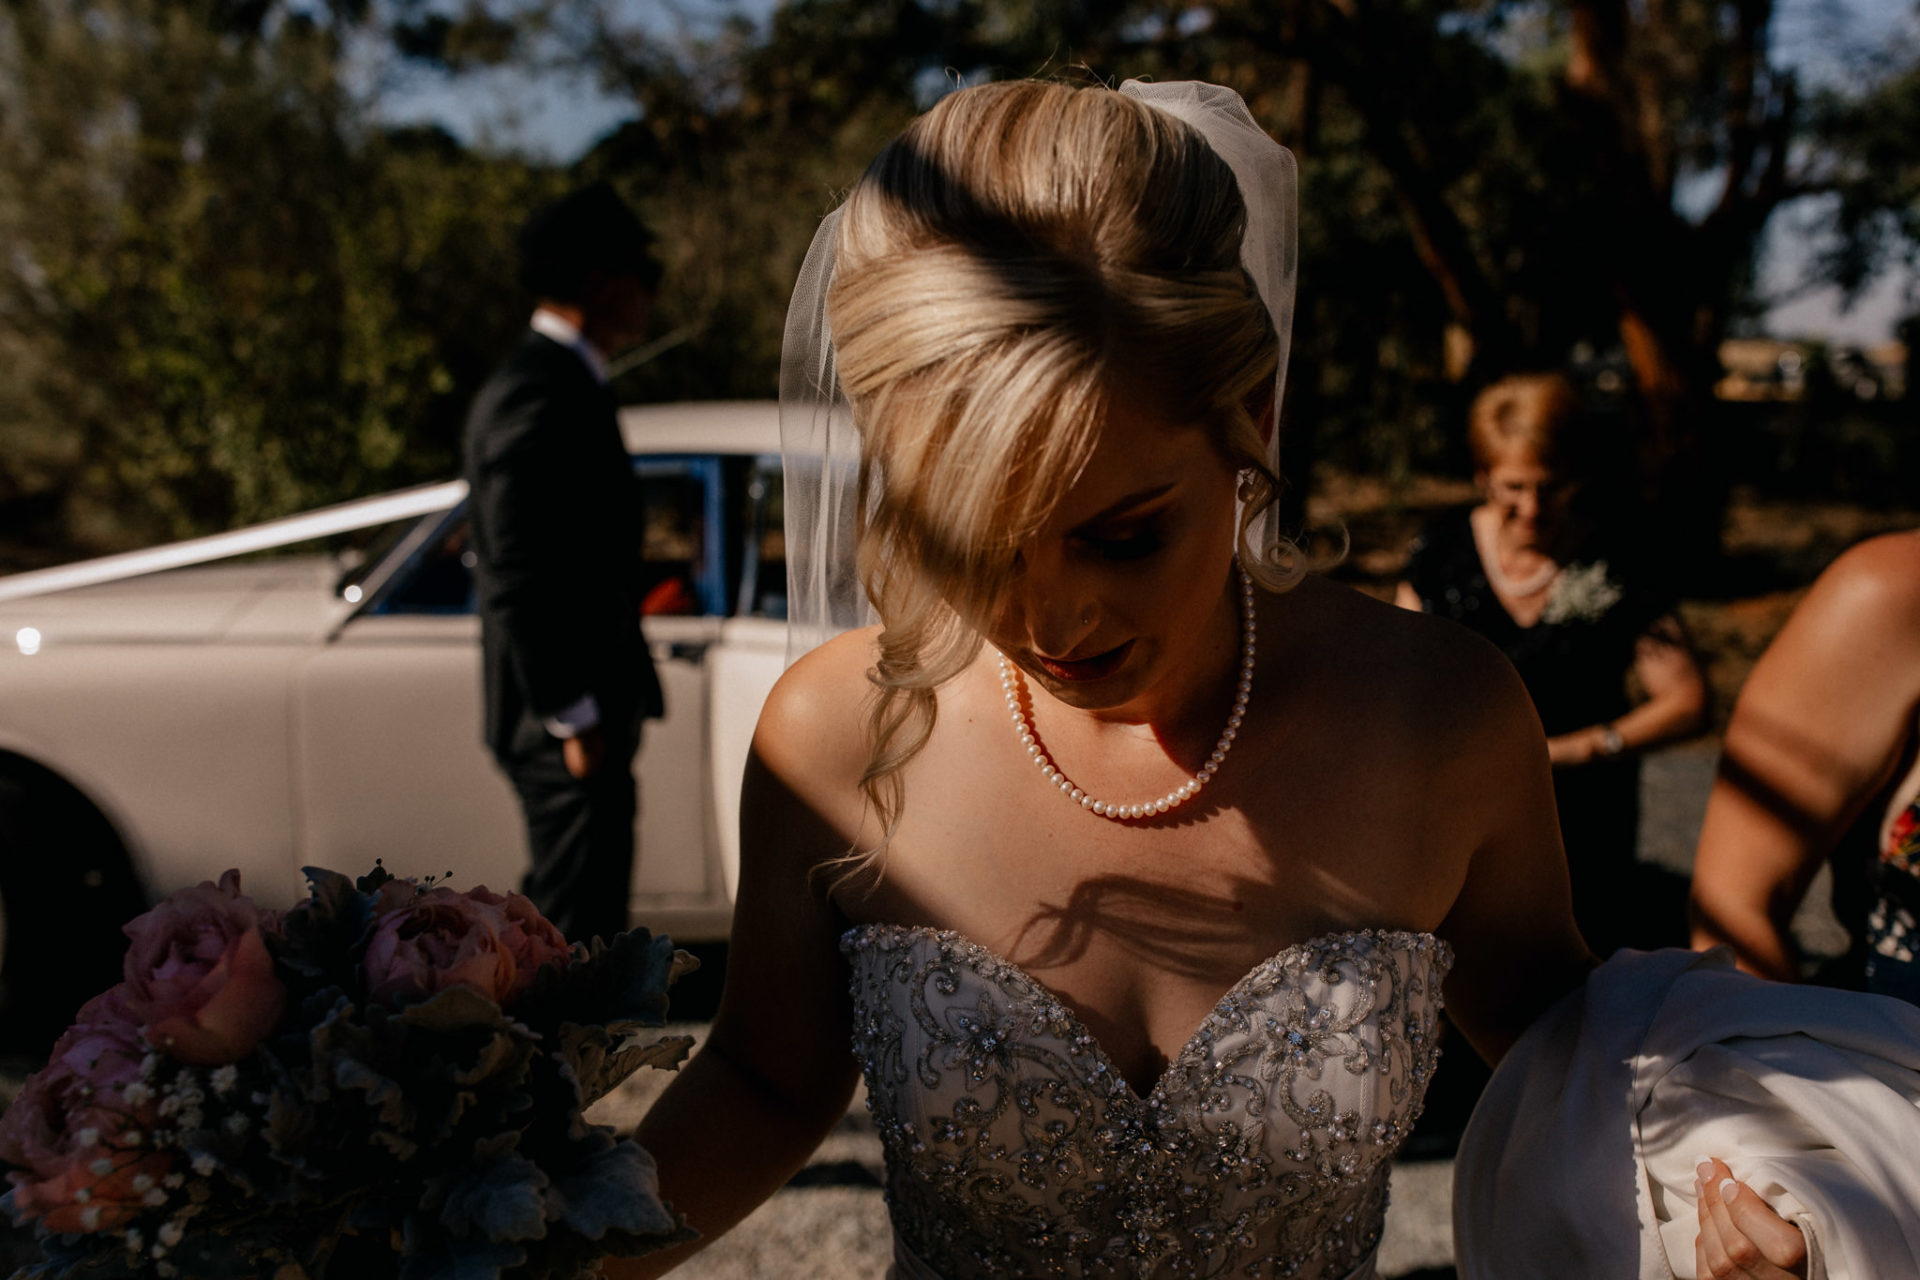 backyard-wedding-australia-melbourne-ceremony-bride-getting-out-of-car